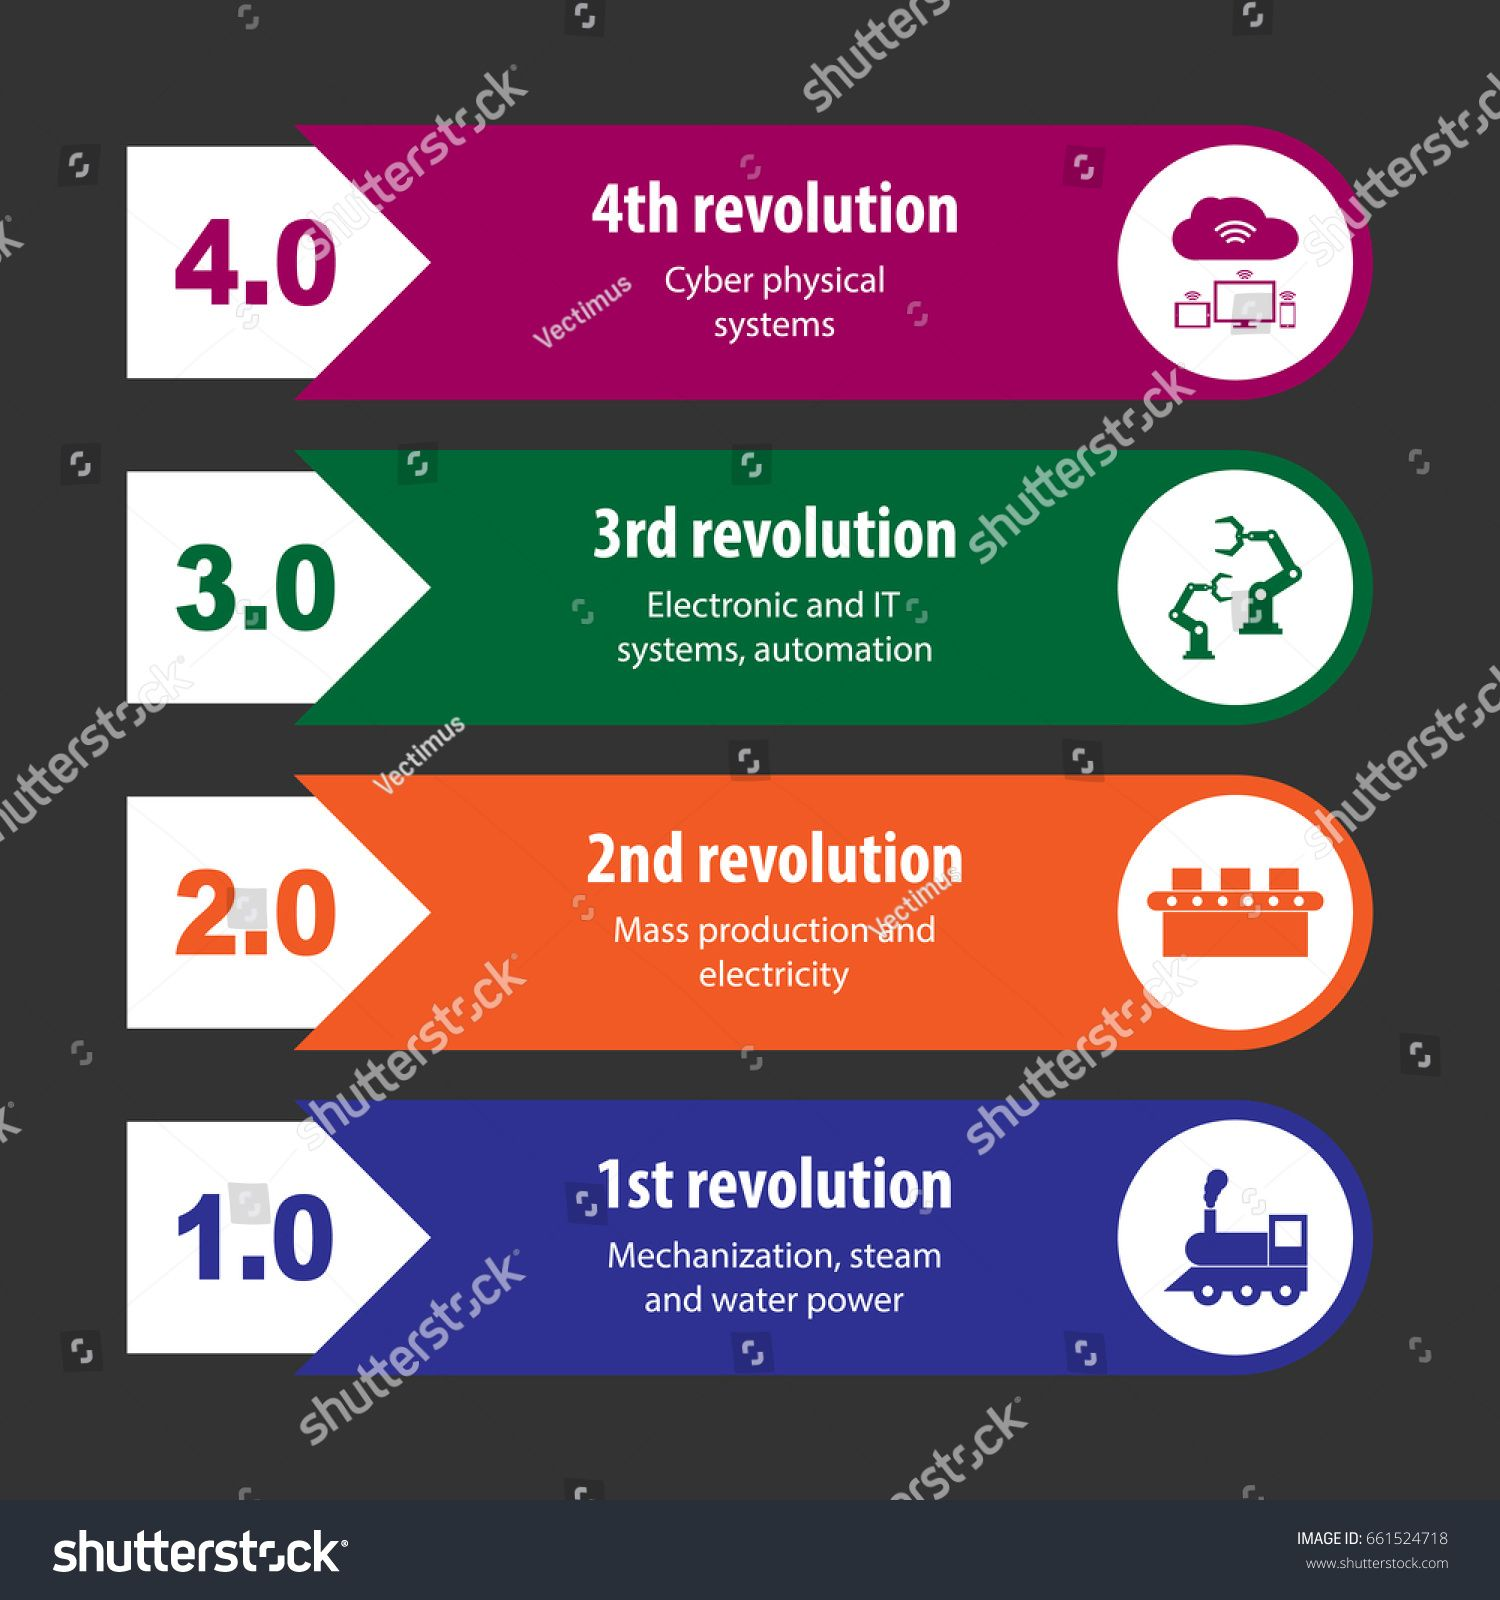 Industry 4 0 And 4th Industrial Revolution Infographic Sponsored